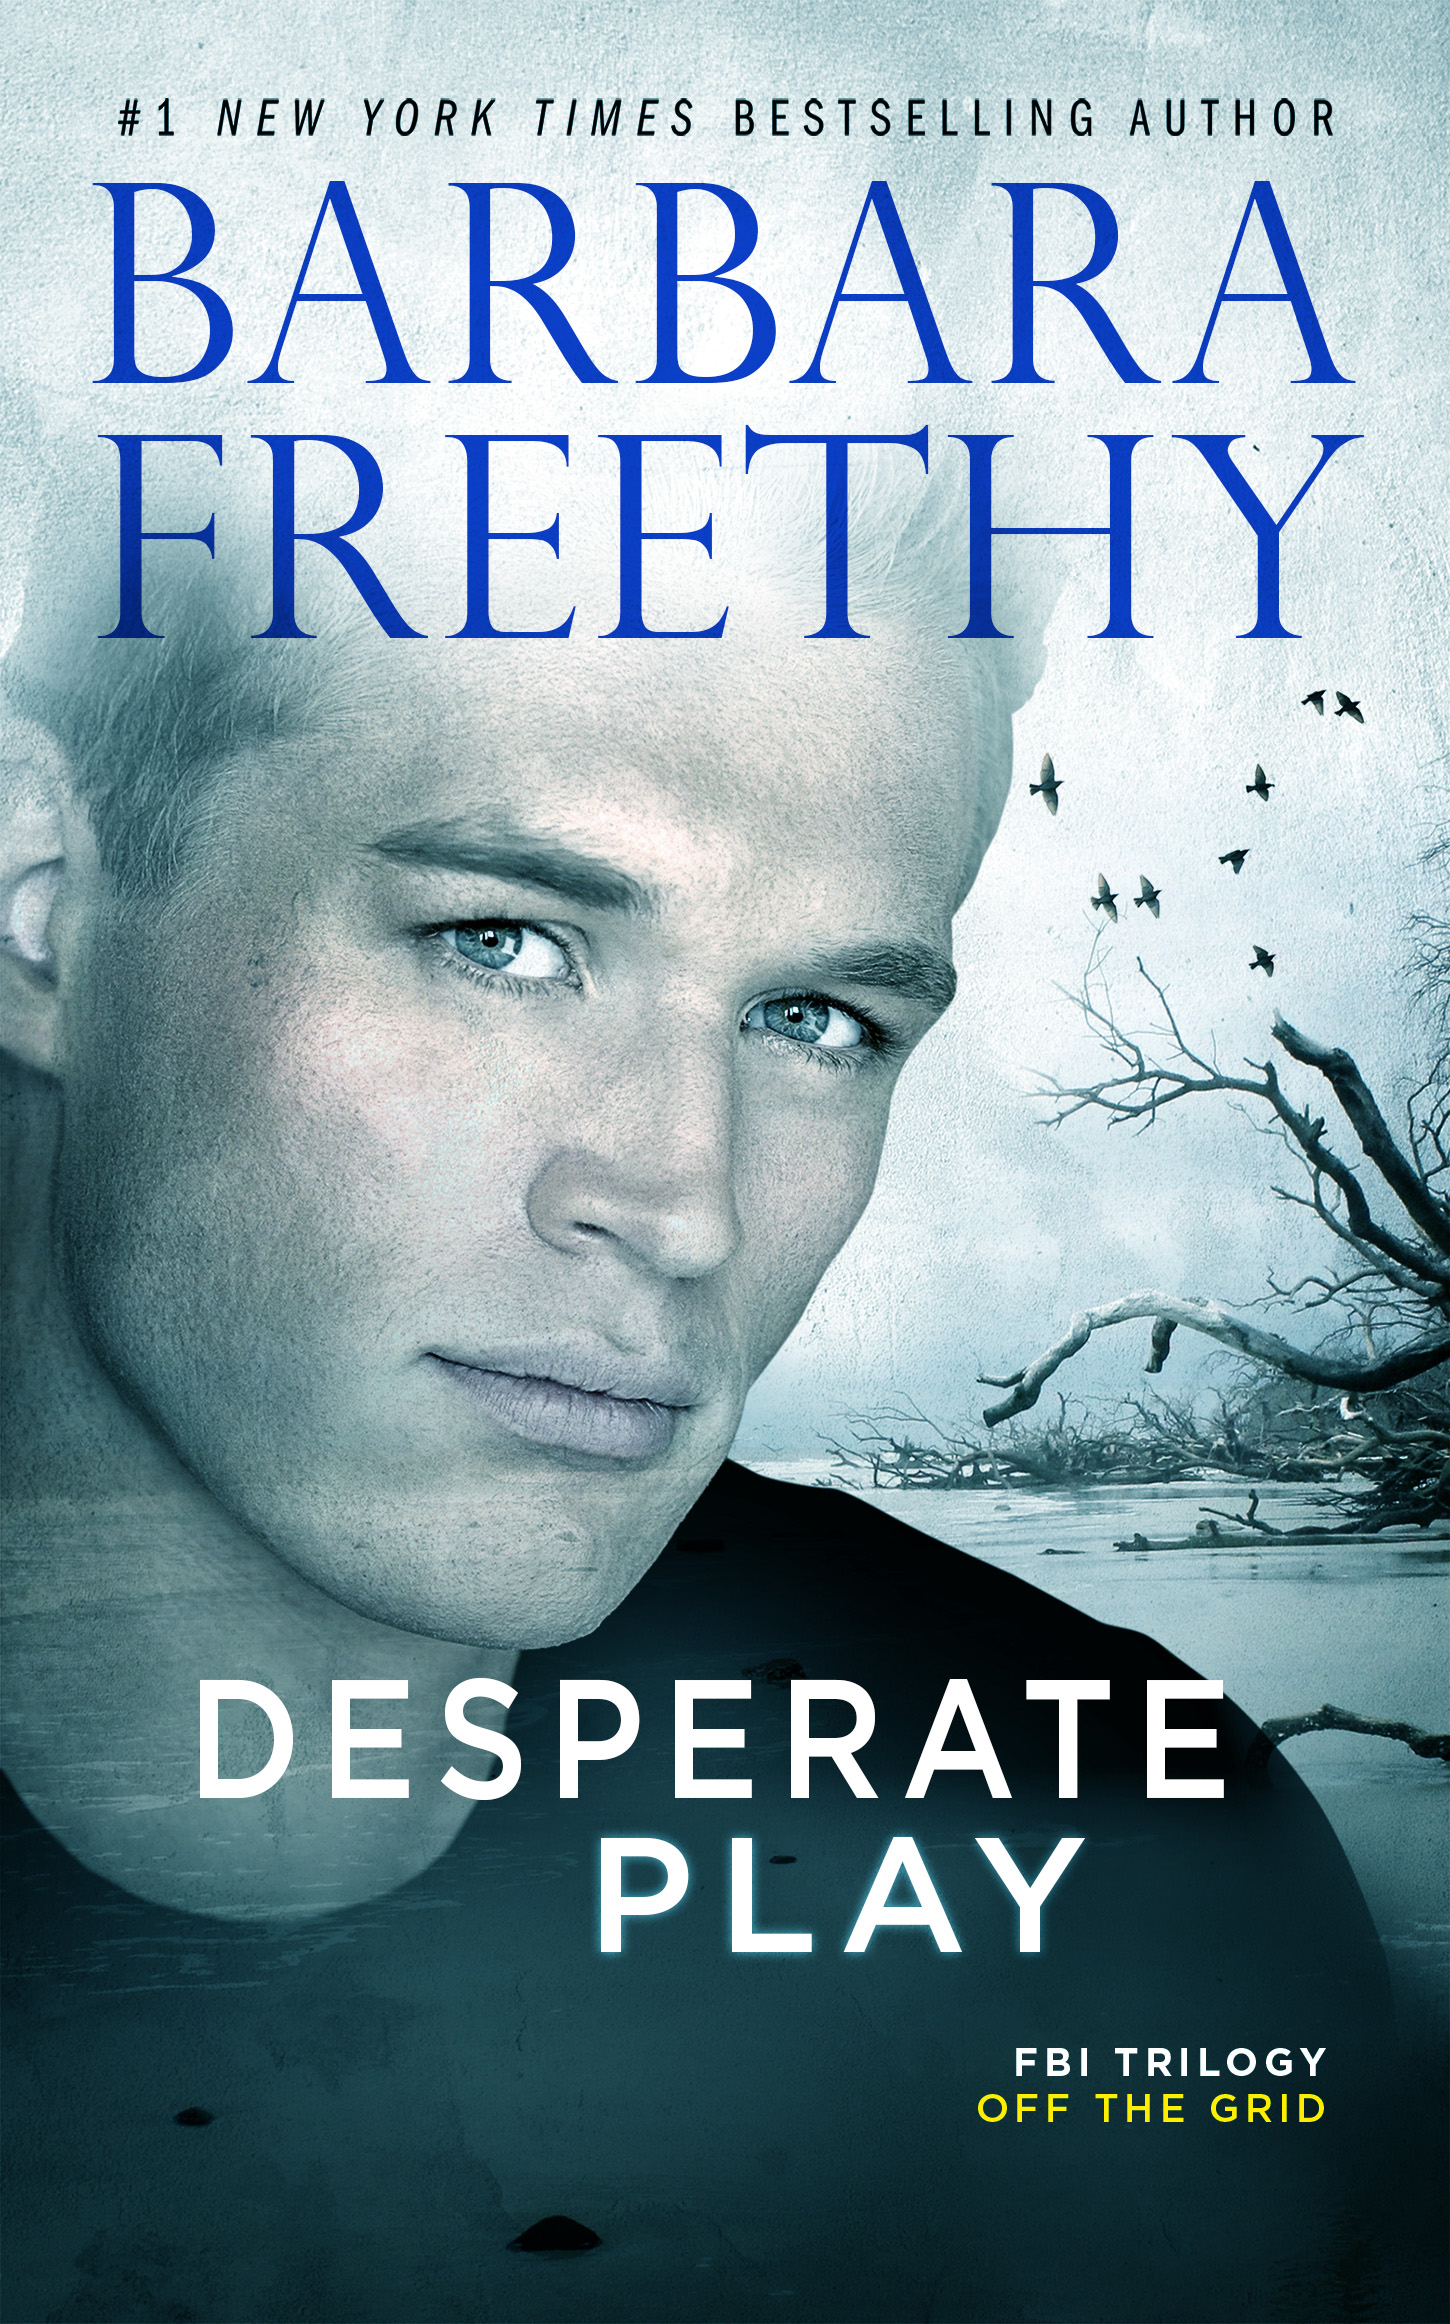 Desperate Play Barbara Freethy The wrath and the dawn by renée ahdieh, sand and ruin and gold by alexis hall, ignite me by tahereh mafi, unravel me by taher. desperate play barbara freethy